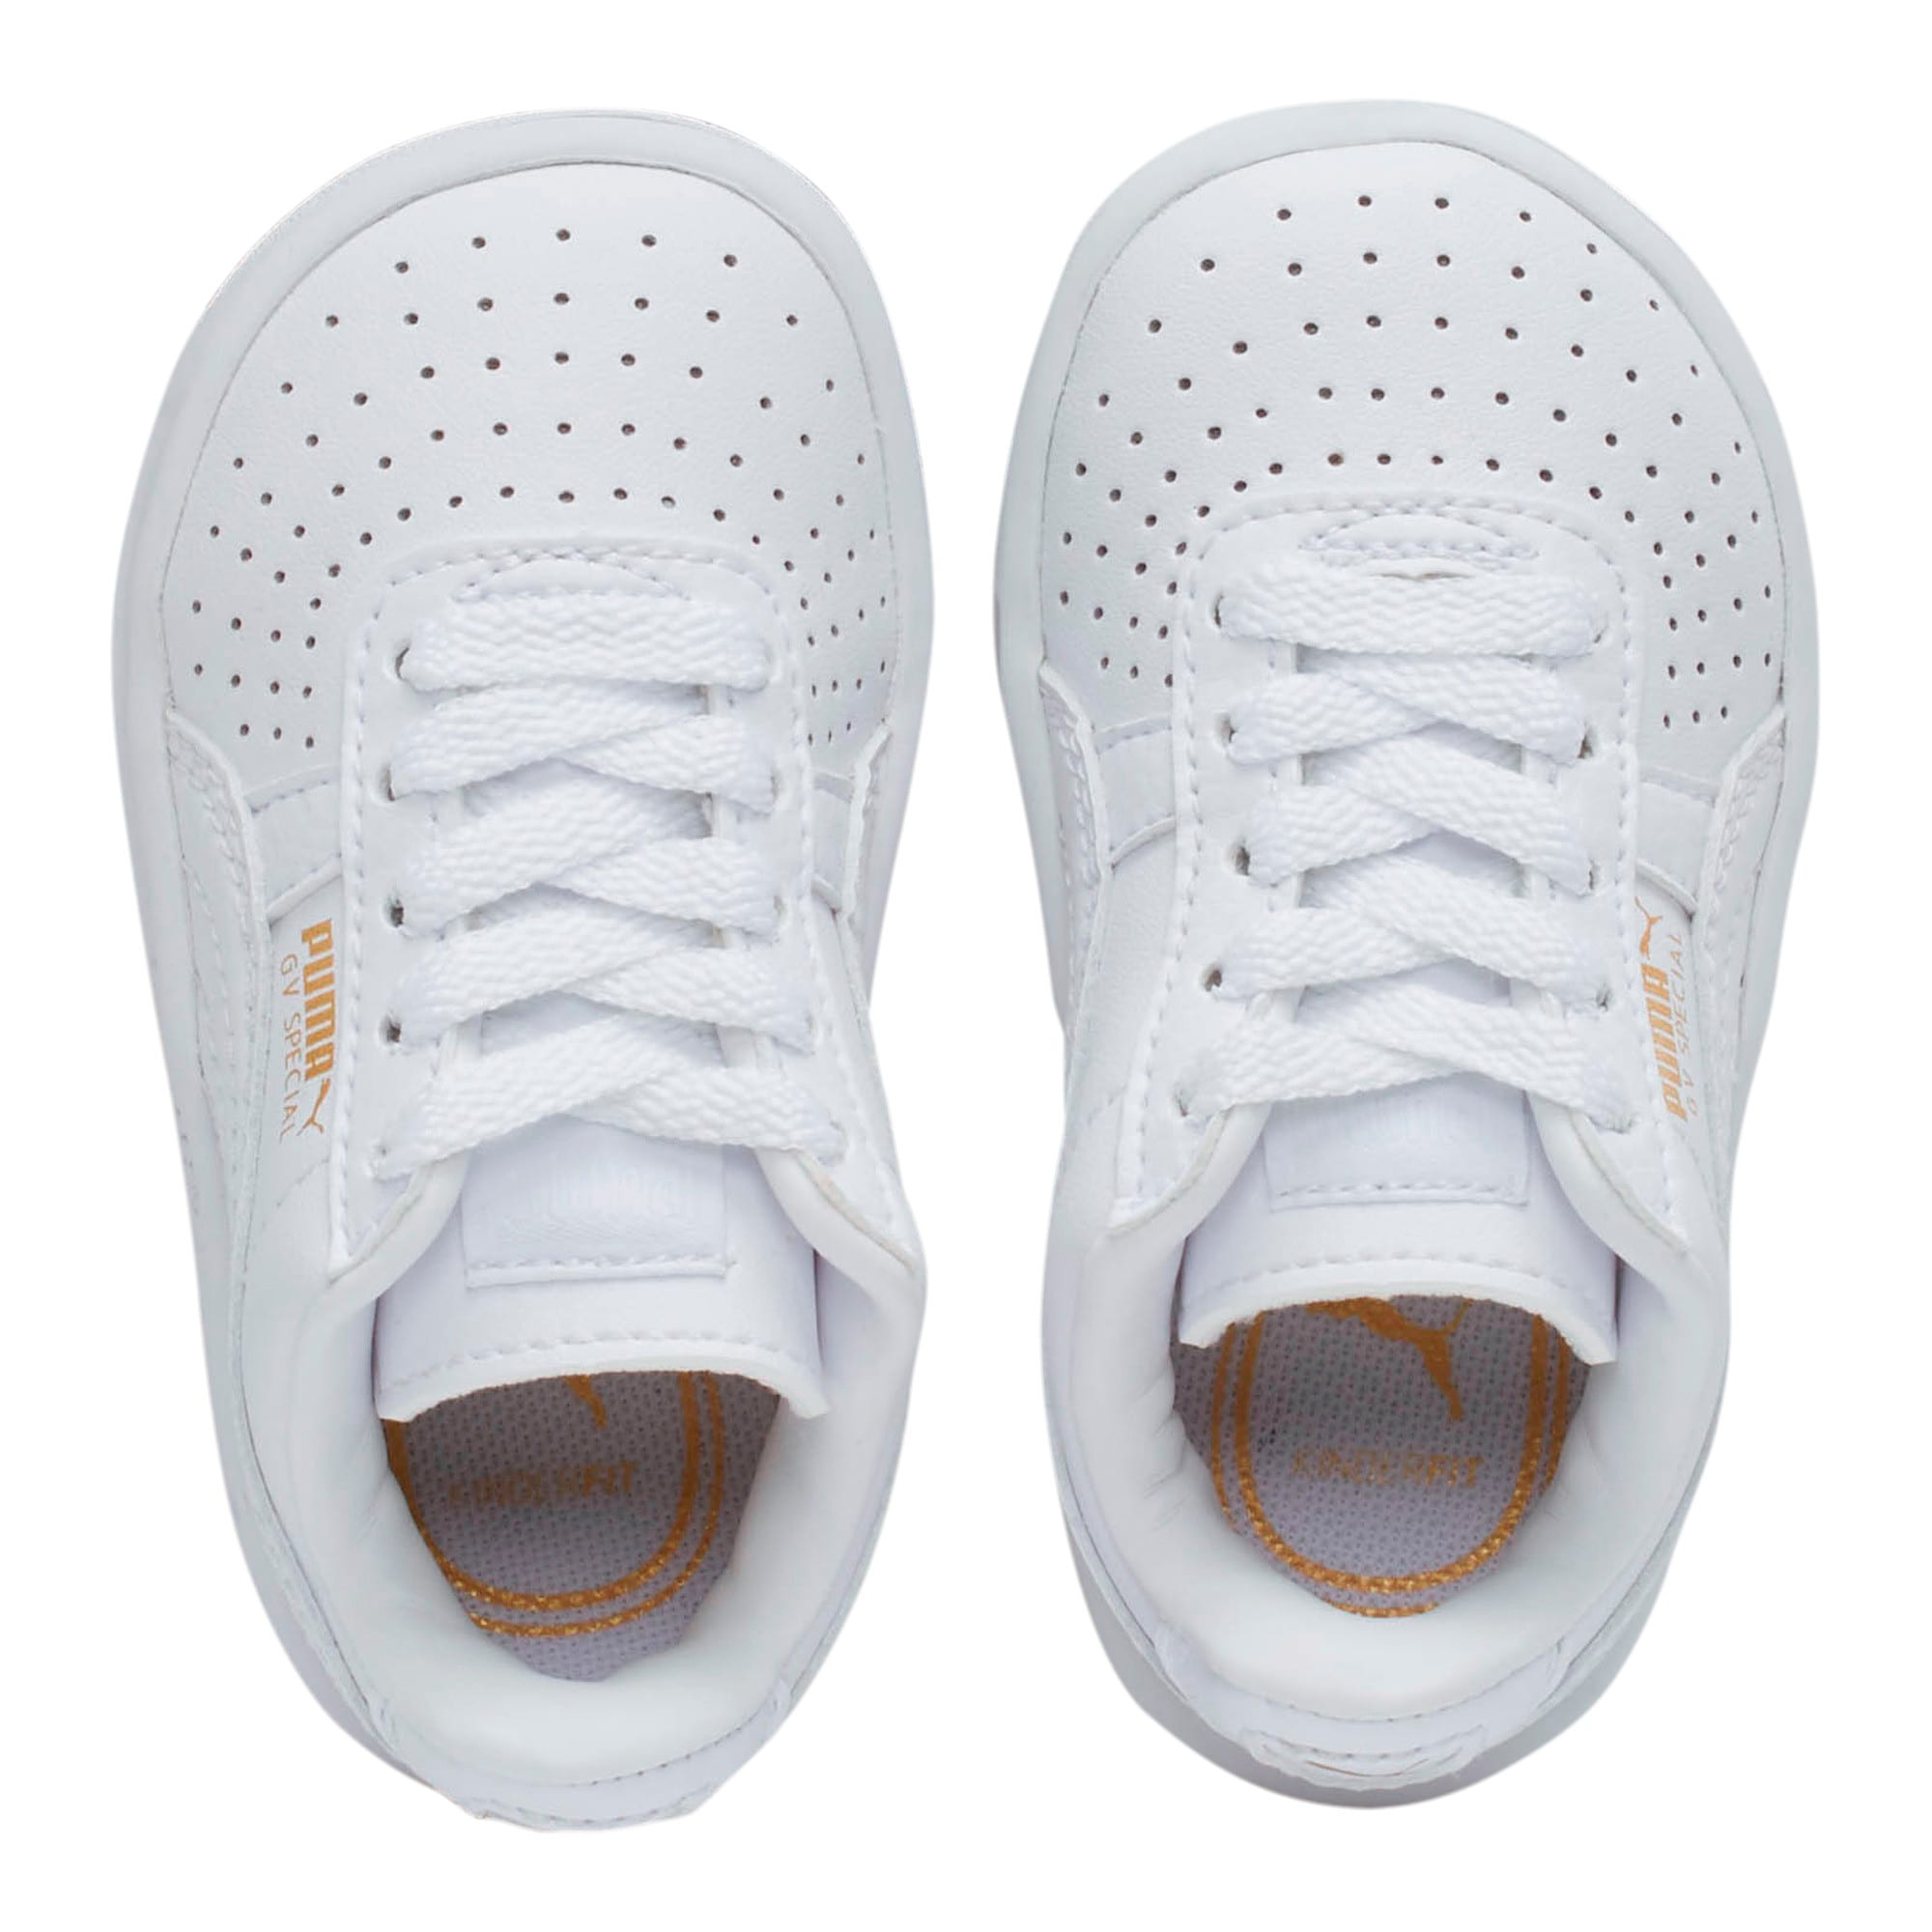 Thumbnail 6 of GV Special Toddler Shoes, Puma White-Puma Team Gold, medium